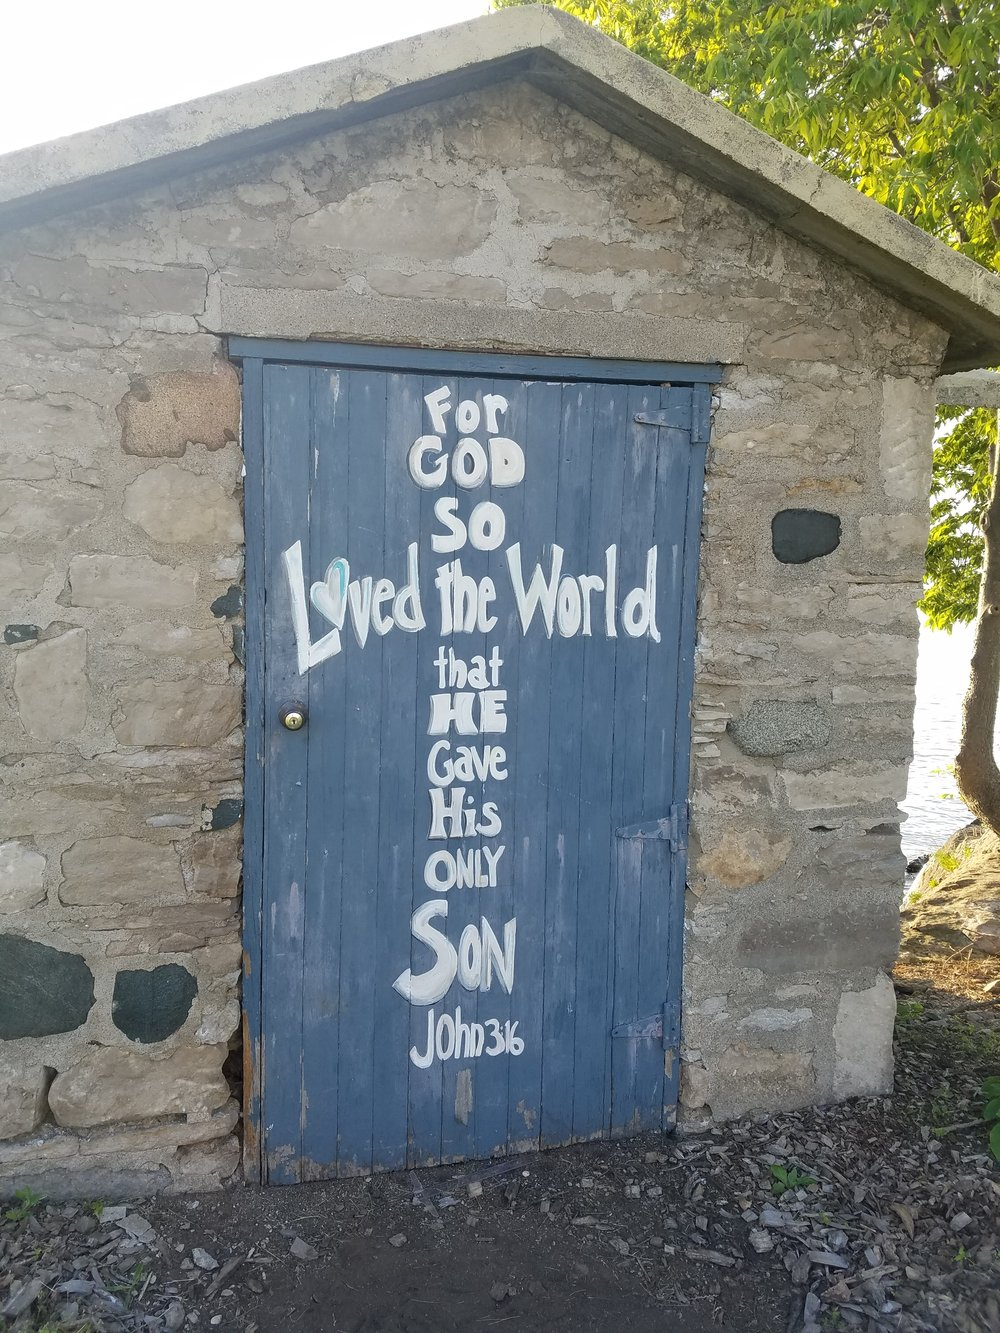 Big boat house door - John 3:16